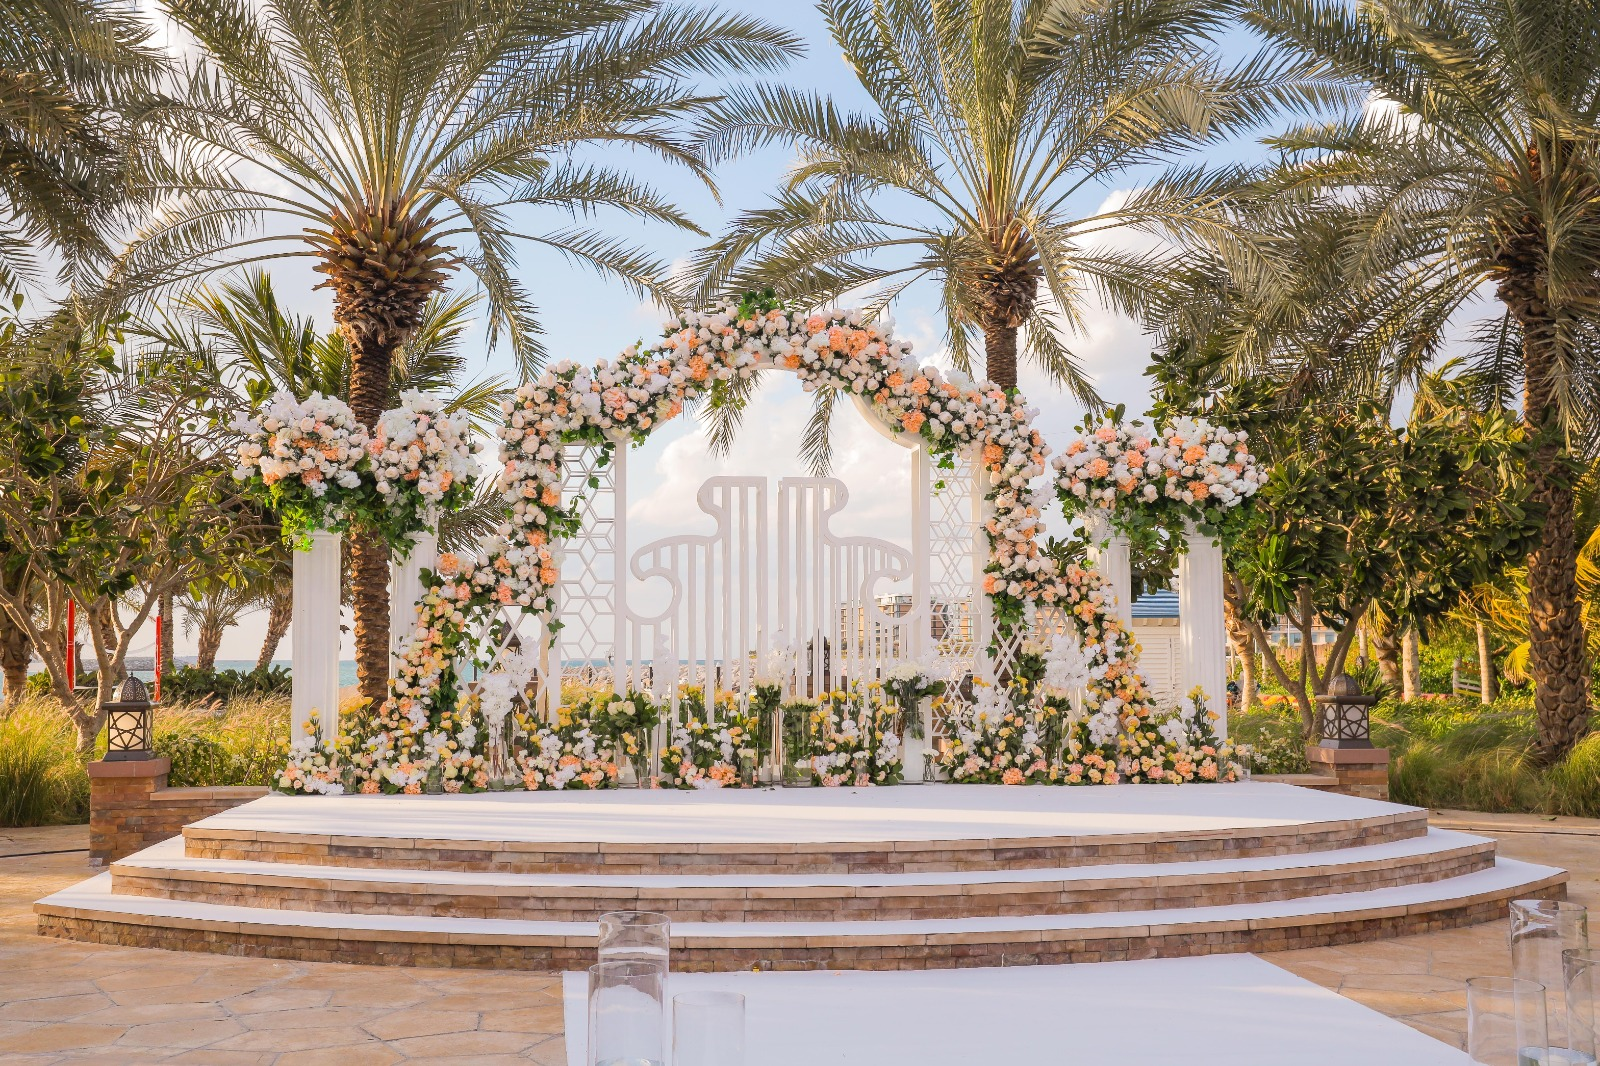 Tugce & Ahmed's Wedding at the Four Seasons Jumeirah Dubai